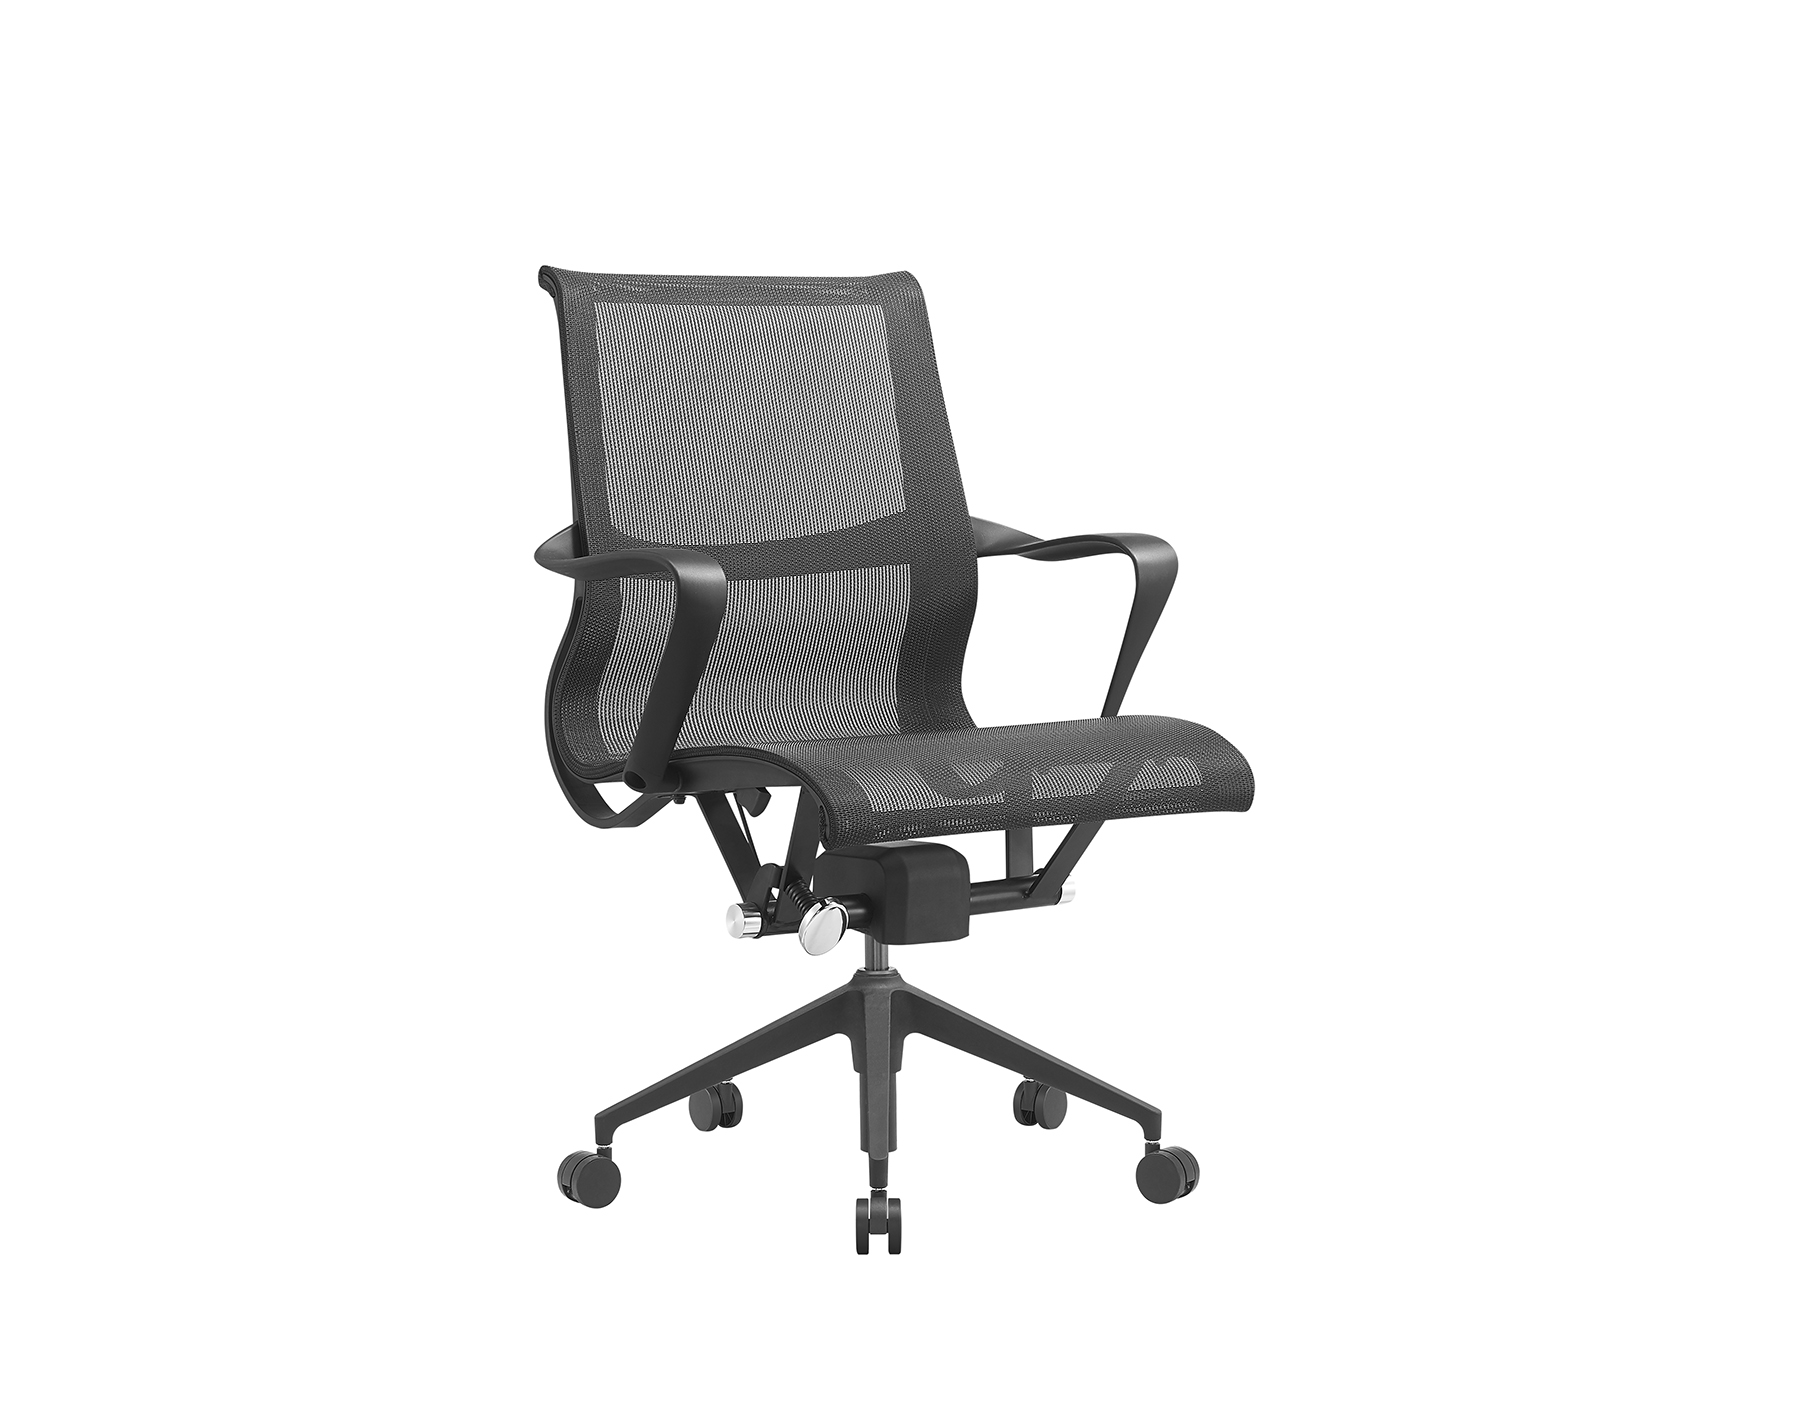 ERGONOMIC MESH ARM-CHAIR